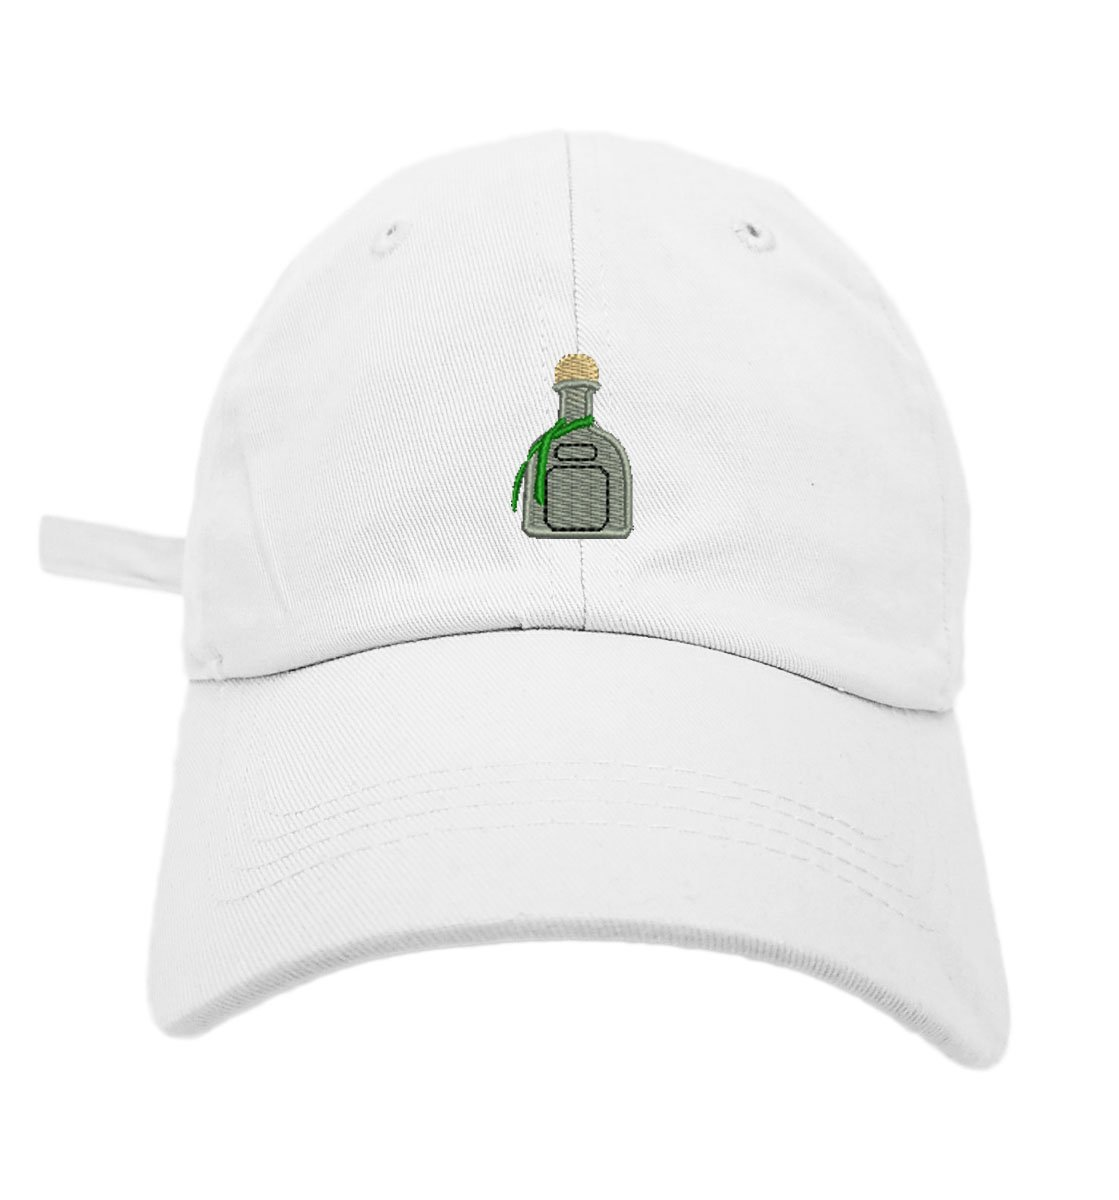 TheMonsta Patron Style Dad Hat Washed Cotton Polo Baseball Cap (White)